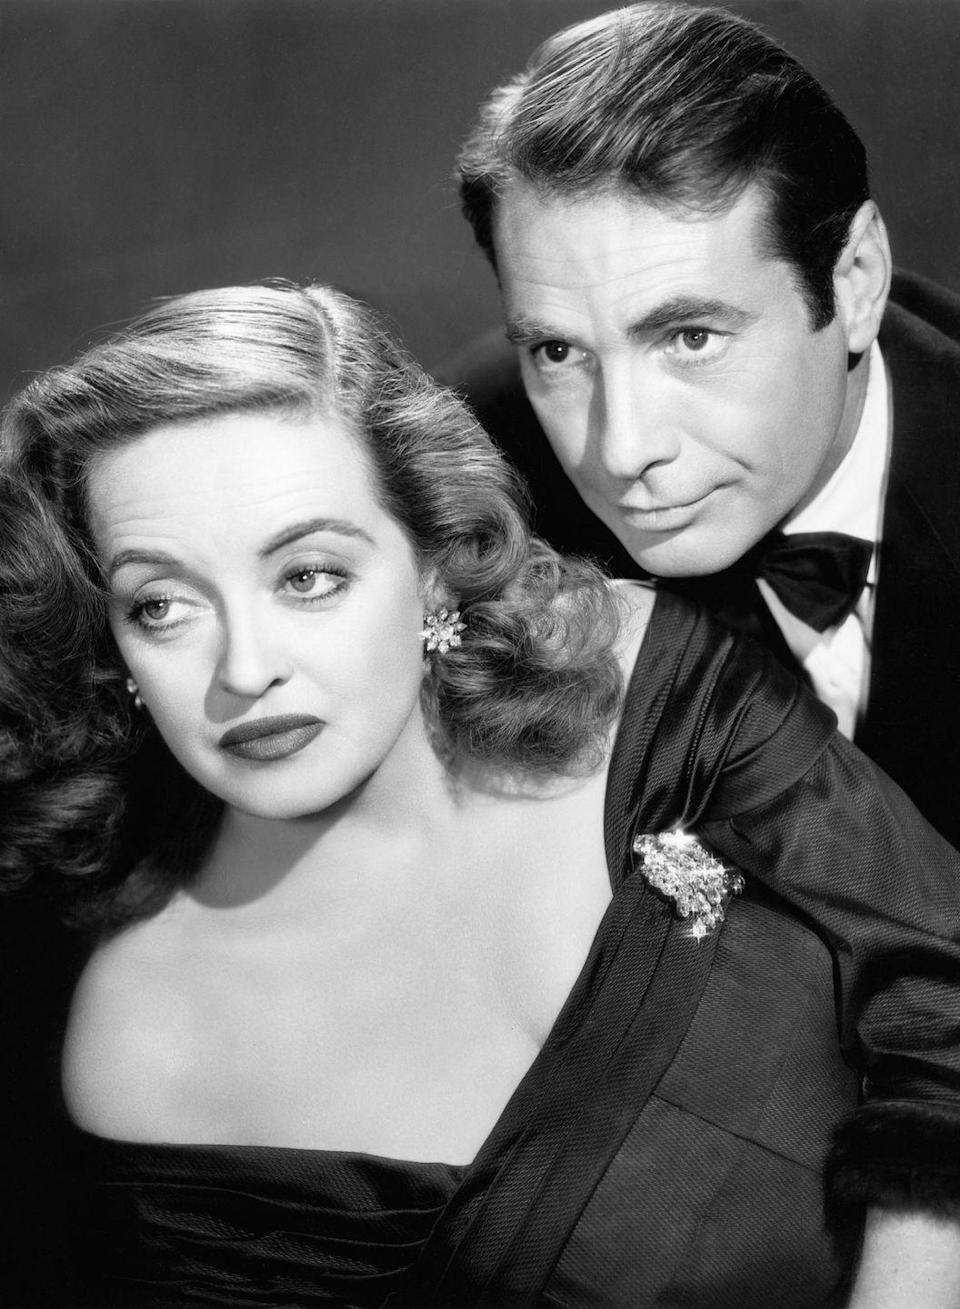 "<p><strong>Synopsis:</strong> Starring Bette Davis, a respected Broadway mega-star hires the young ambitious fan 'Eve' played by Anne Baxter as her personal assistant. Before long, it appears that 'Eve' has a sly conniving plan to overtake the big star and steal her life.</p><p>""Bette Davis is just spectacular.""</p>"